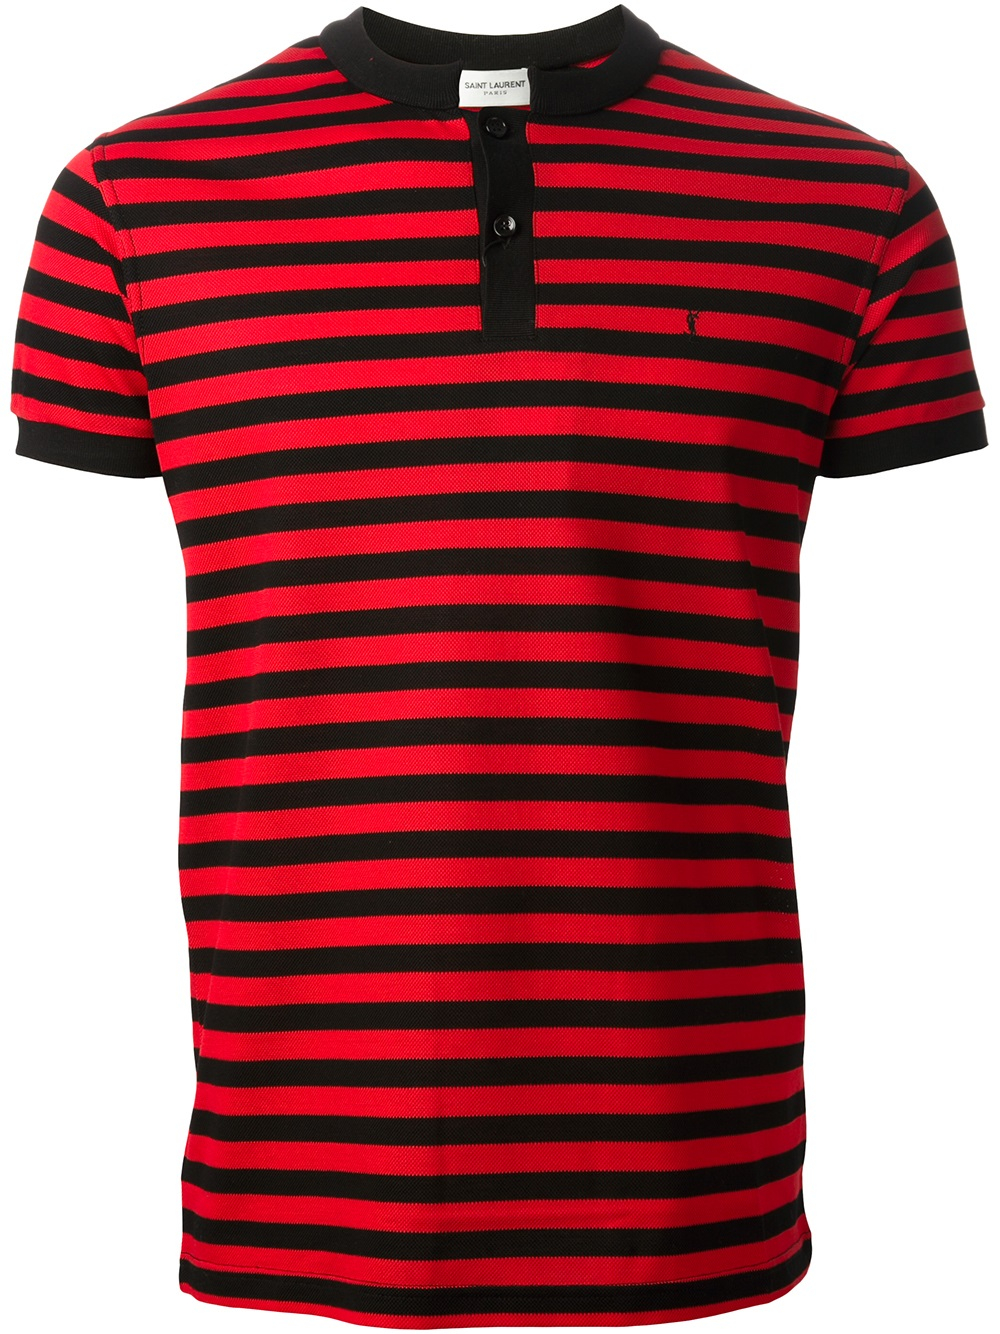 Lyst Saint Laurent Striped Polo Shirt In Red For Men